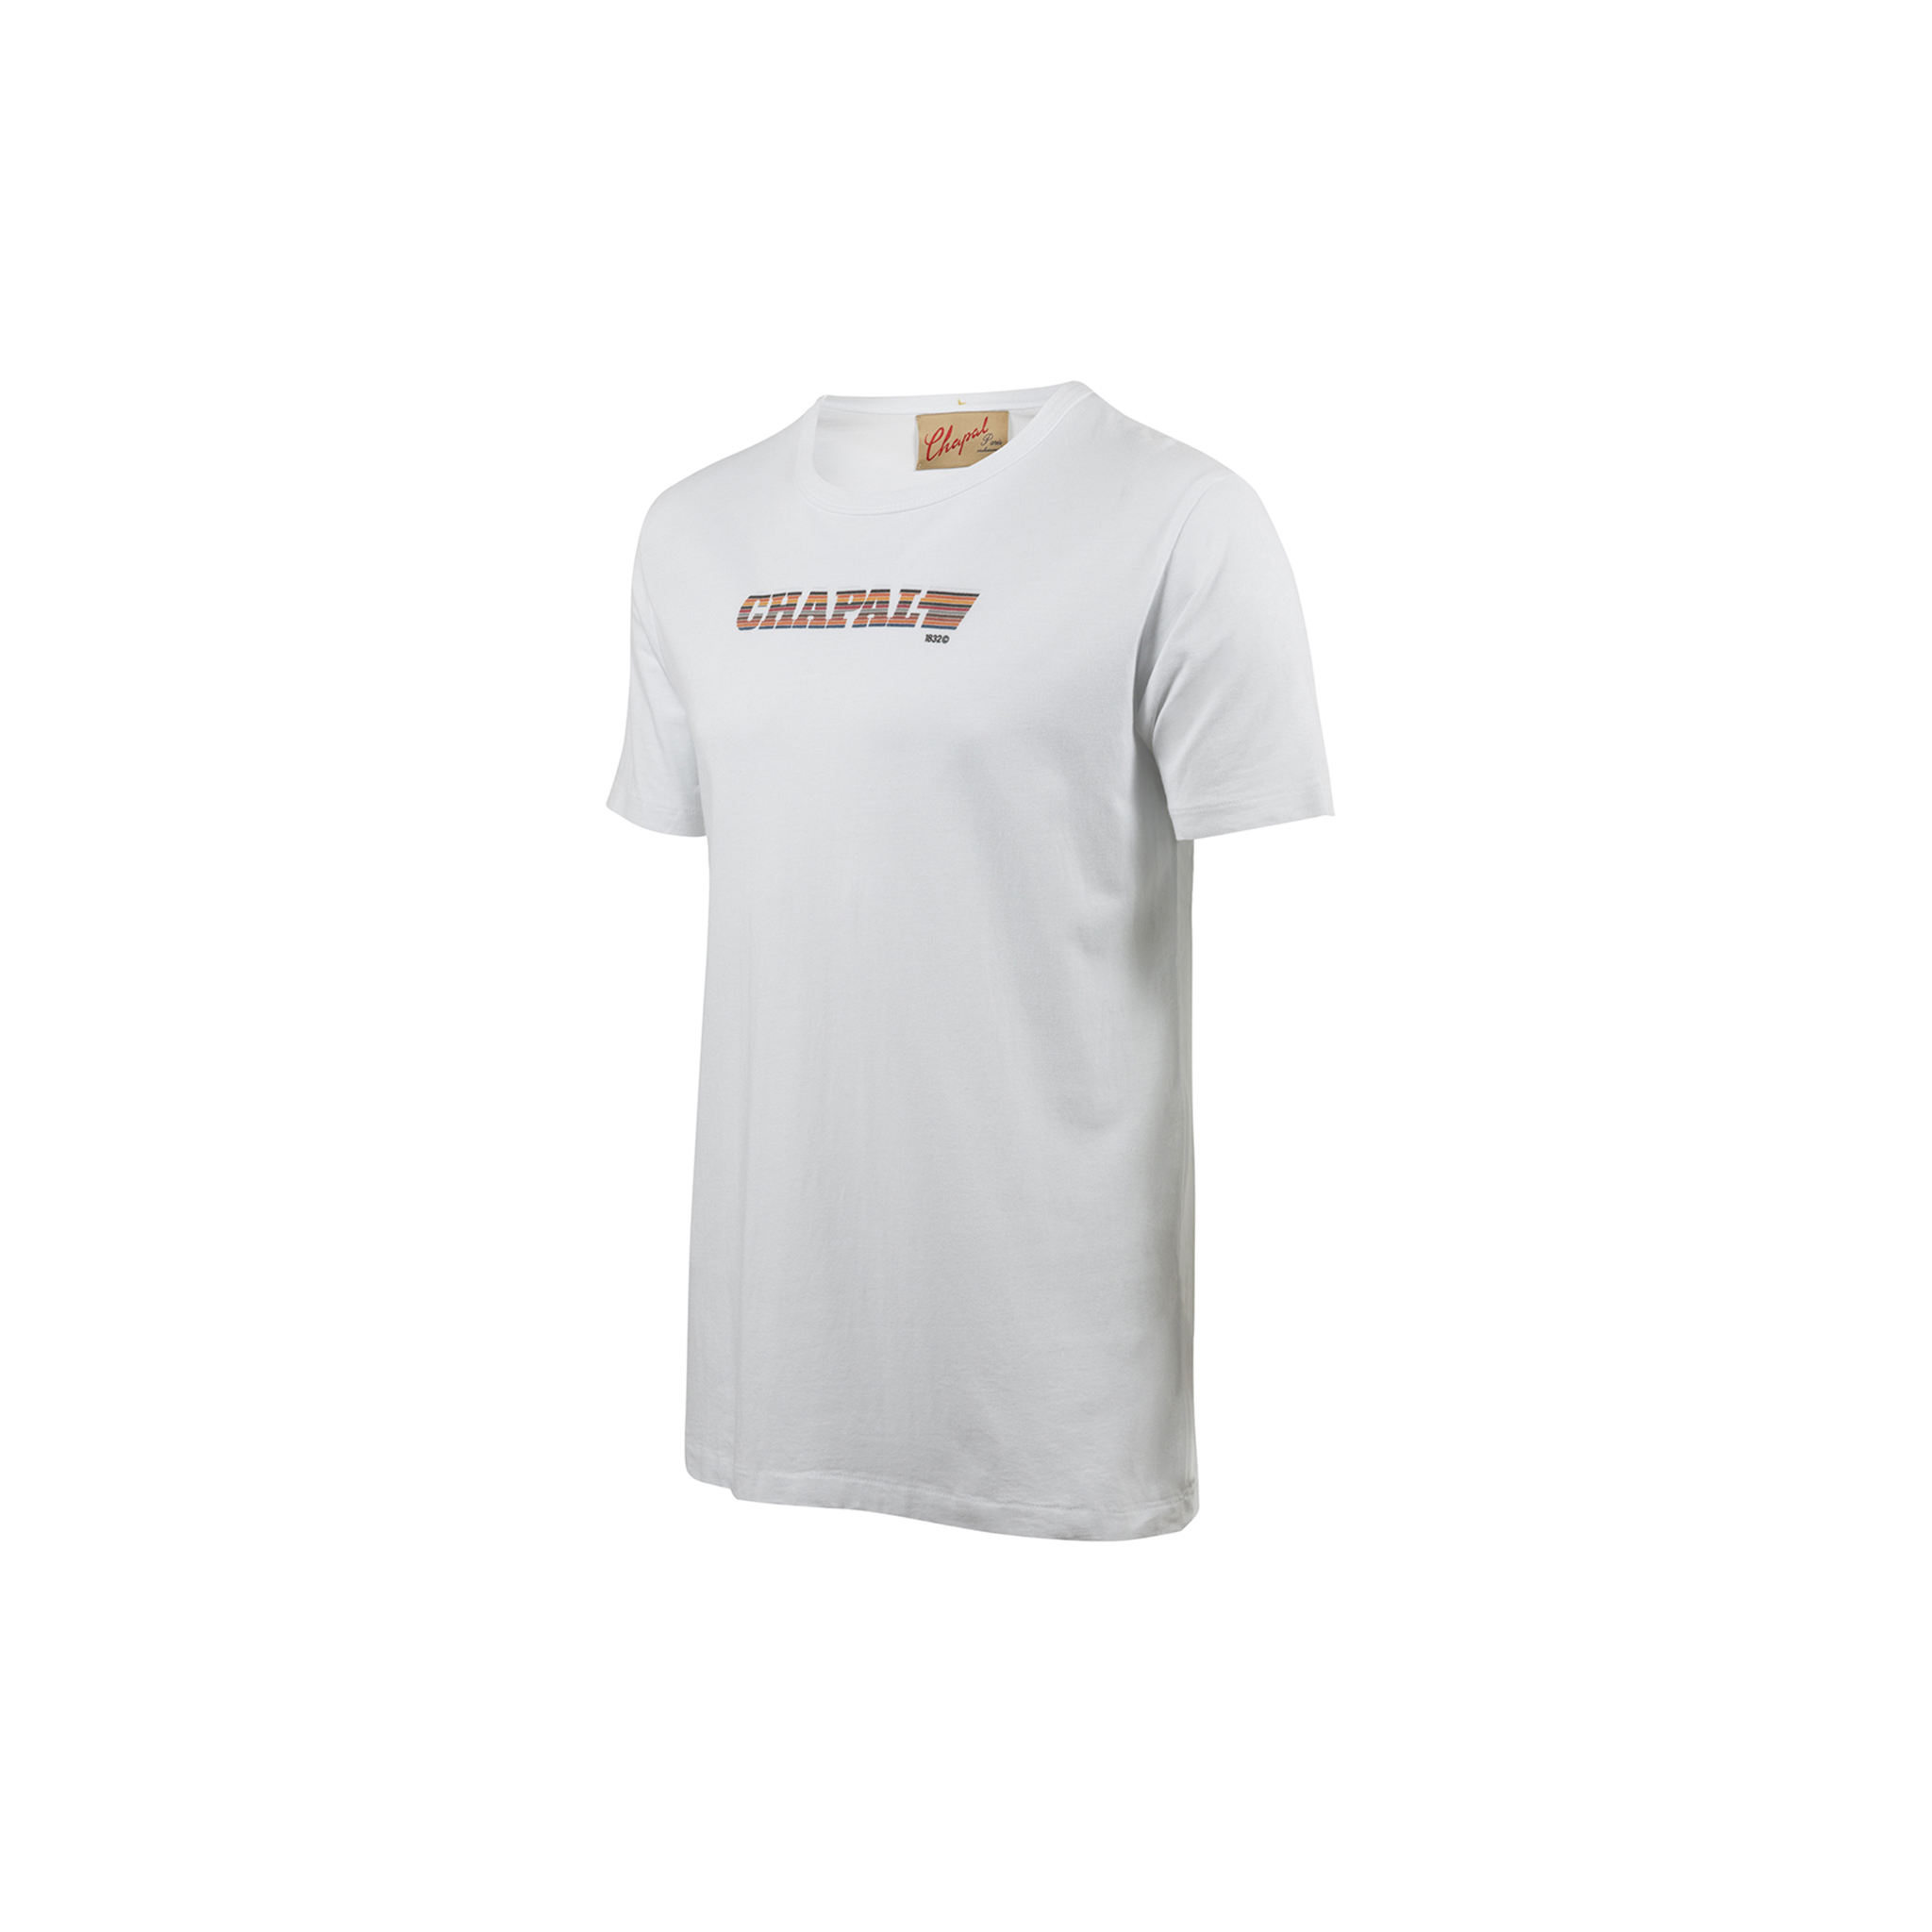 T-shirt Color Book - Jersey de coton - Couleur blanc